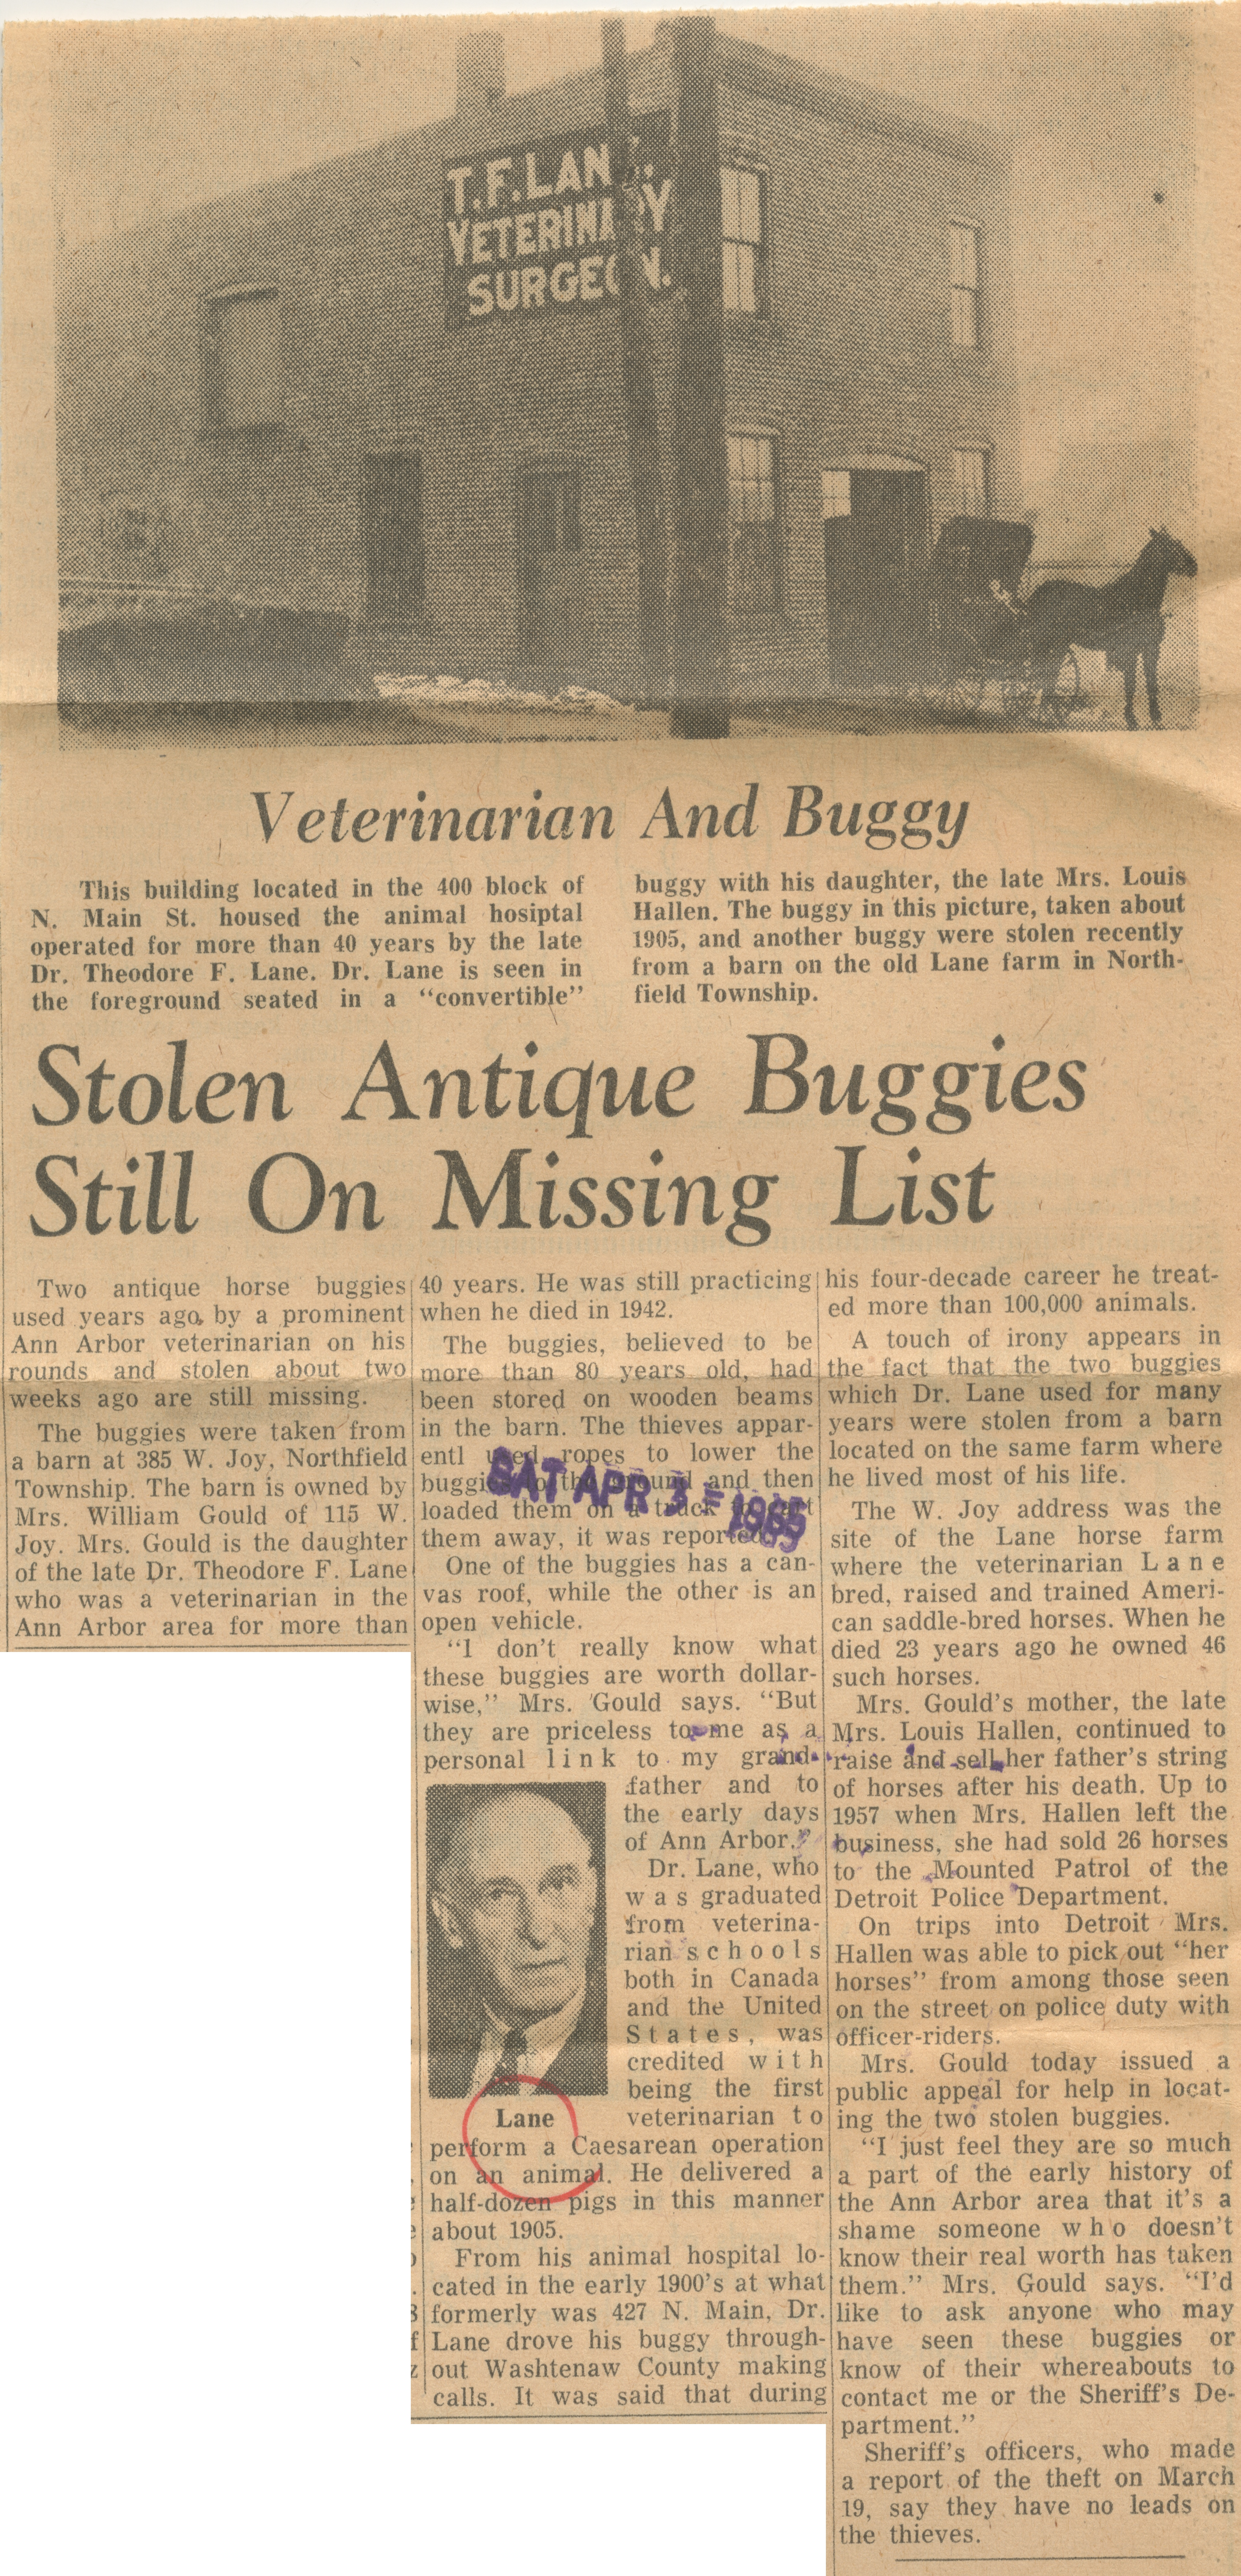 Stolen Antique Buggies Still On Missing List image